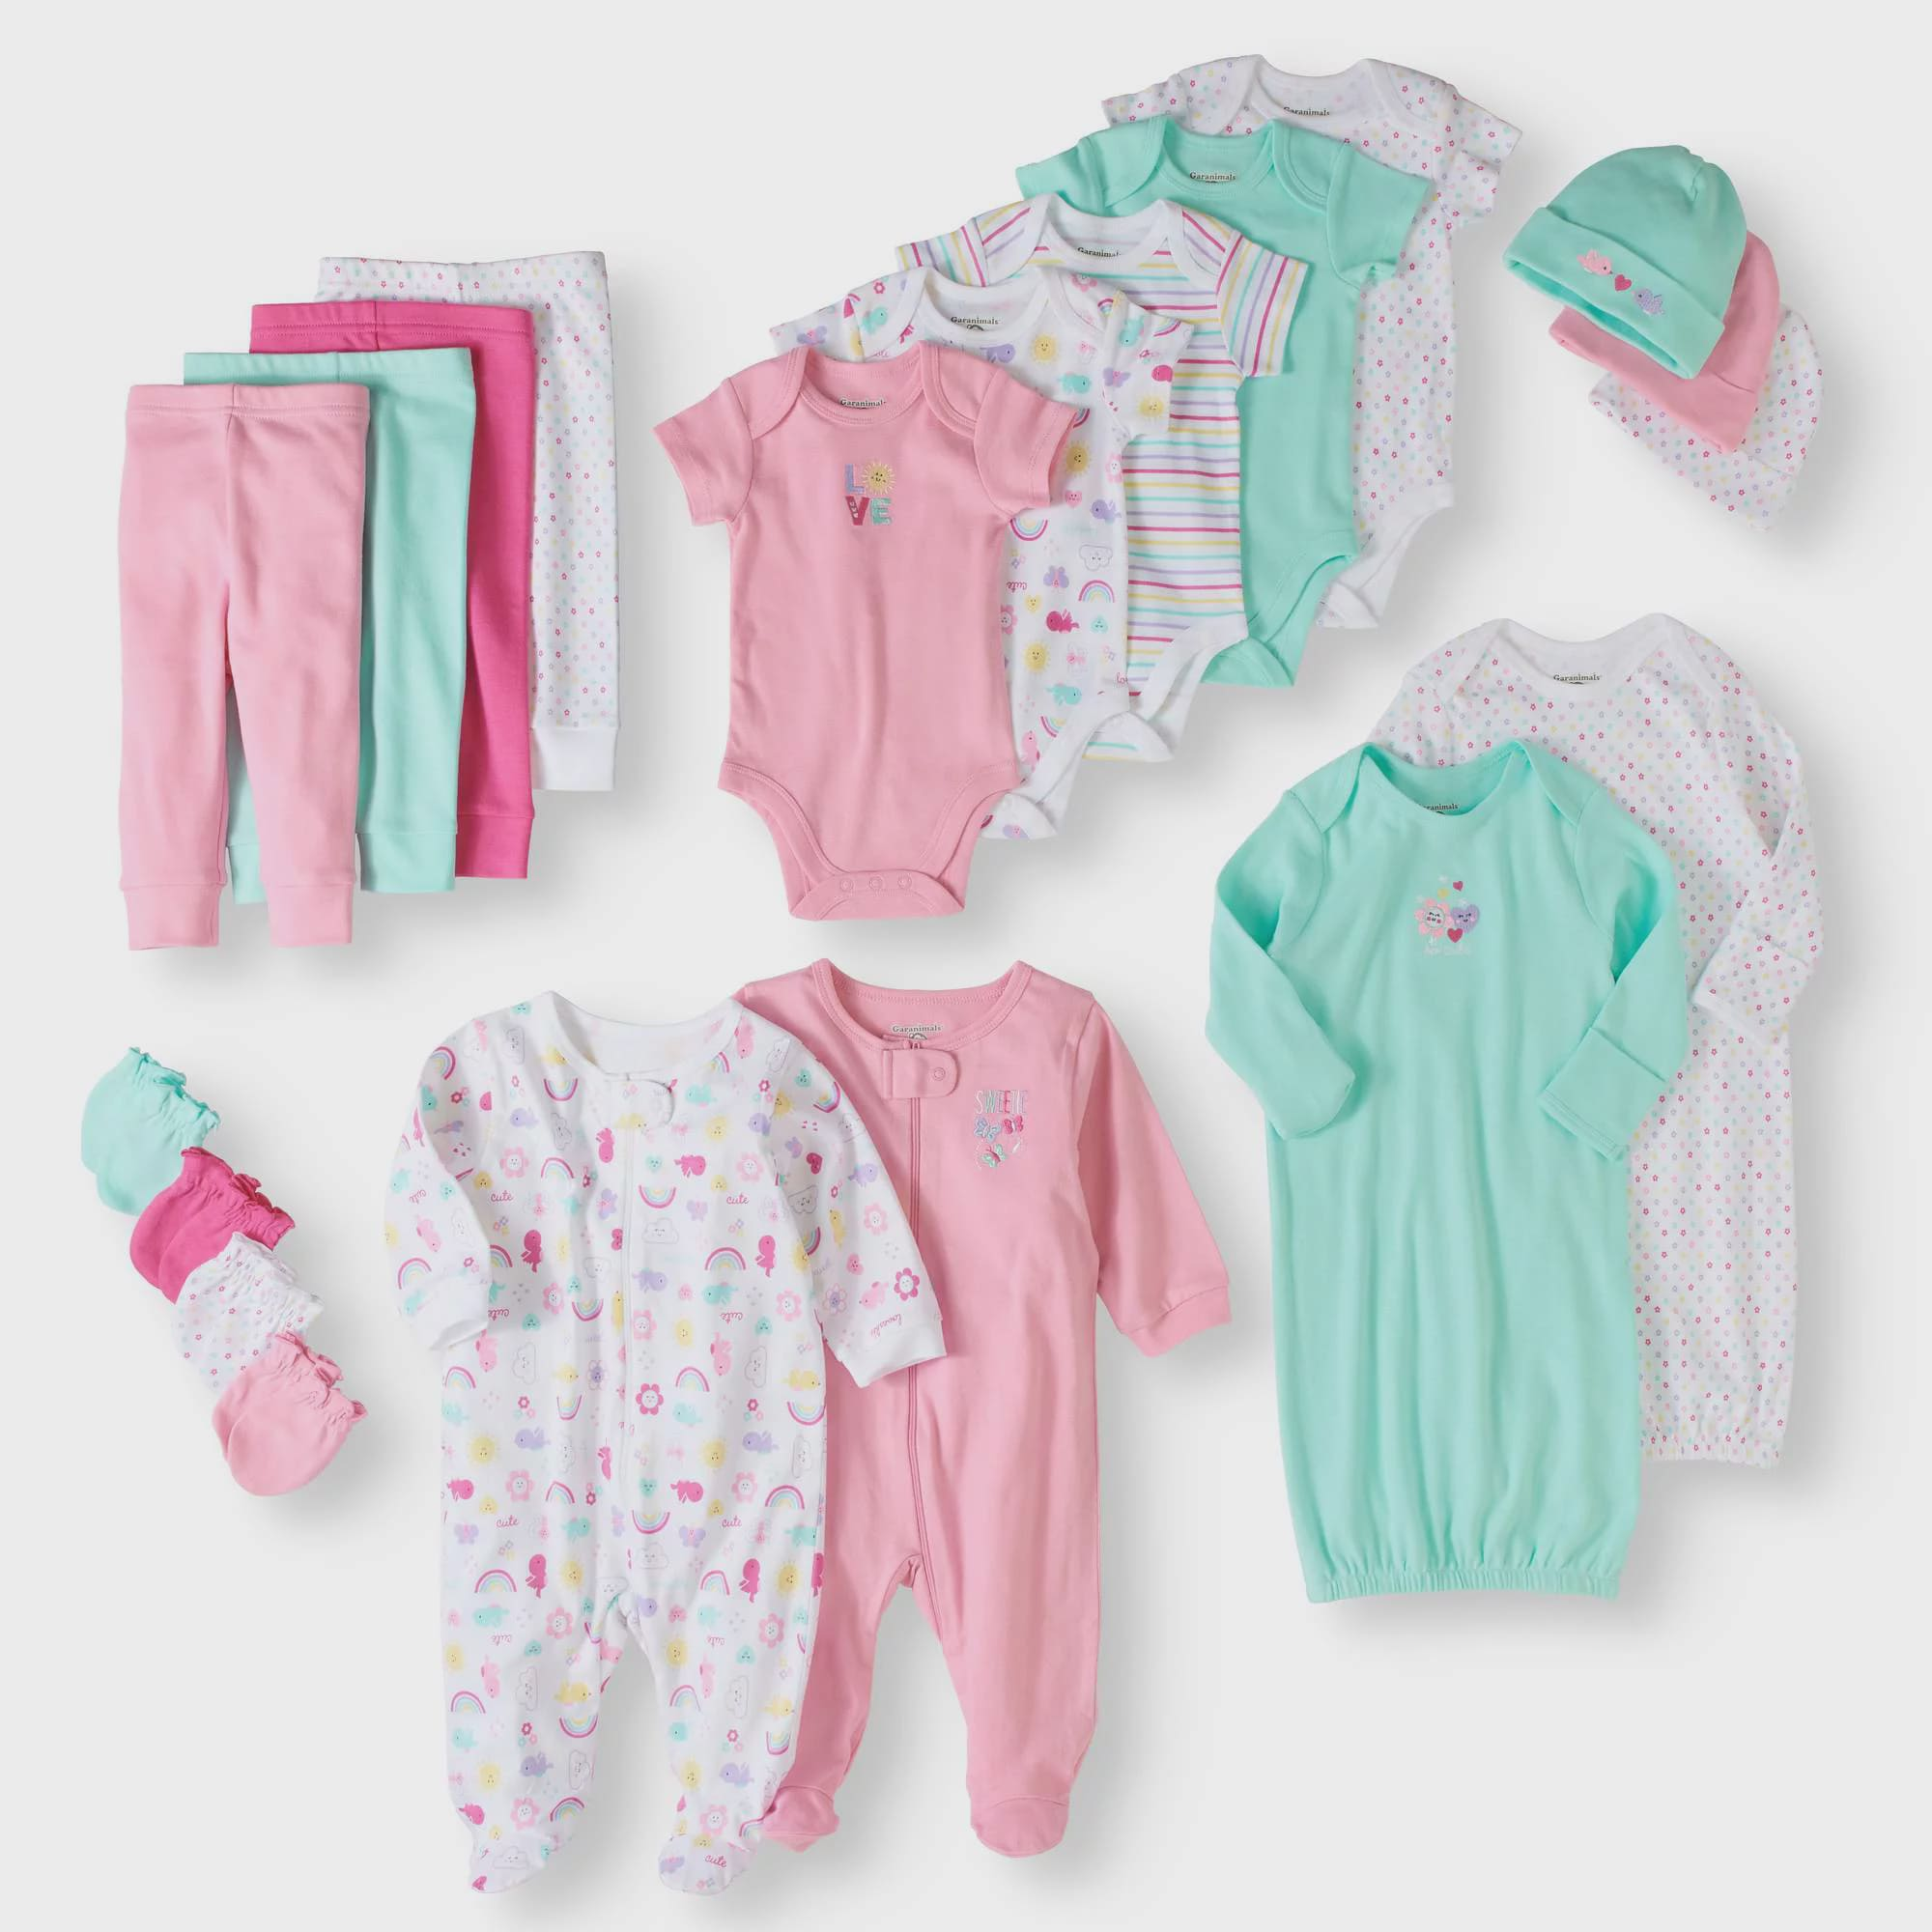 Garanimals - Garanimals Newborn Baby Girl Clothes Shower Gift Set, 8-Piece  - Walmart.com